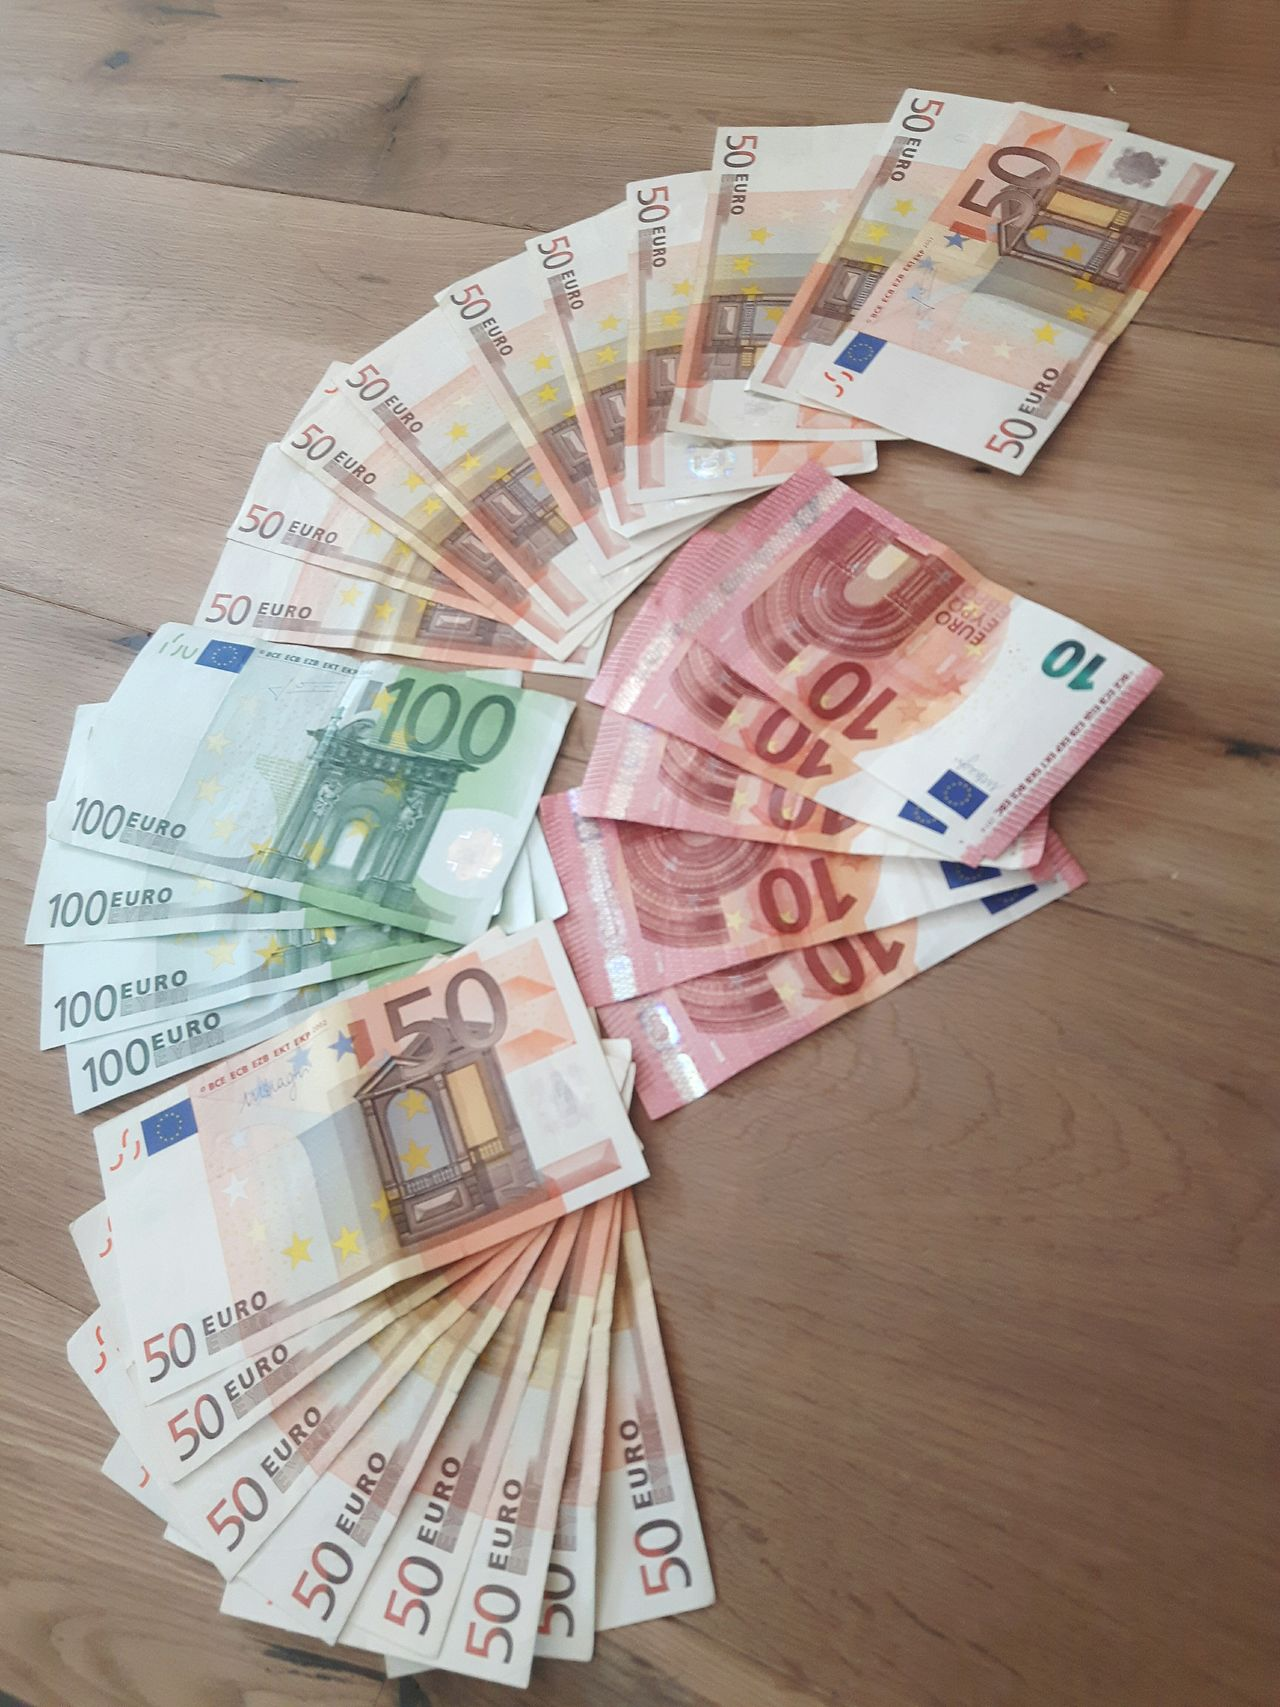 Geldscheine Geldschein  Euro Bills Euronote Money Paying Euro bills in several denominations